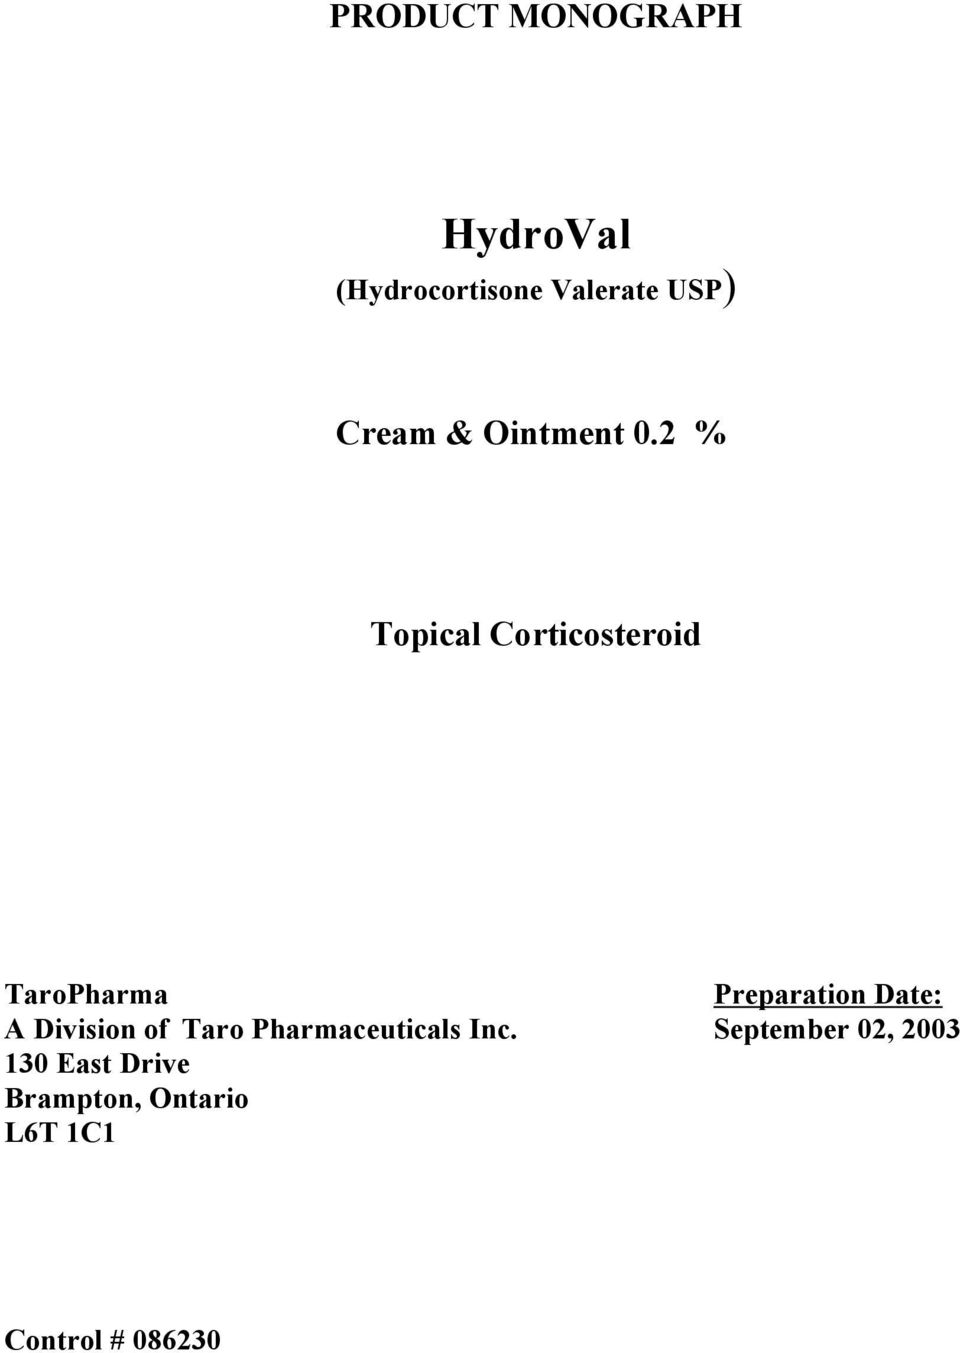 PRODUCT MONOGRAPH  HydroVal  (Hydrocortisone Valerate USP) Cream